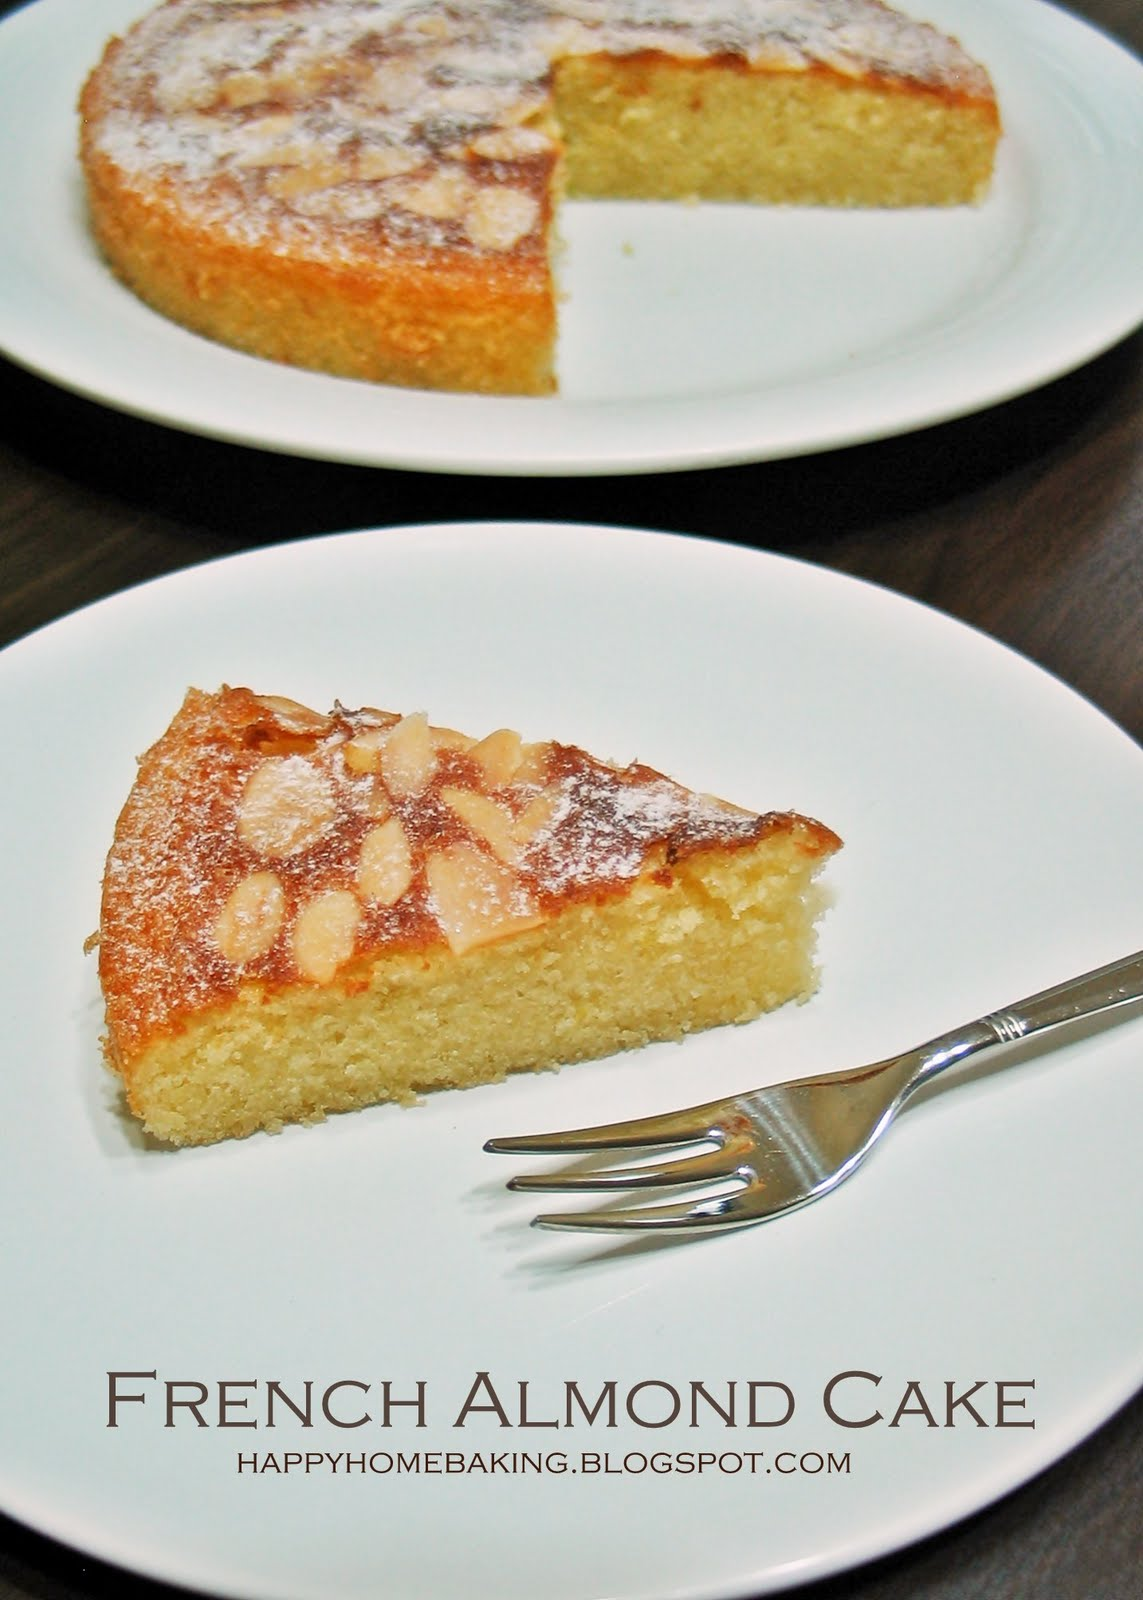 Sponge Cake With Almond Flour